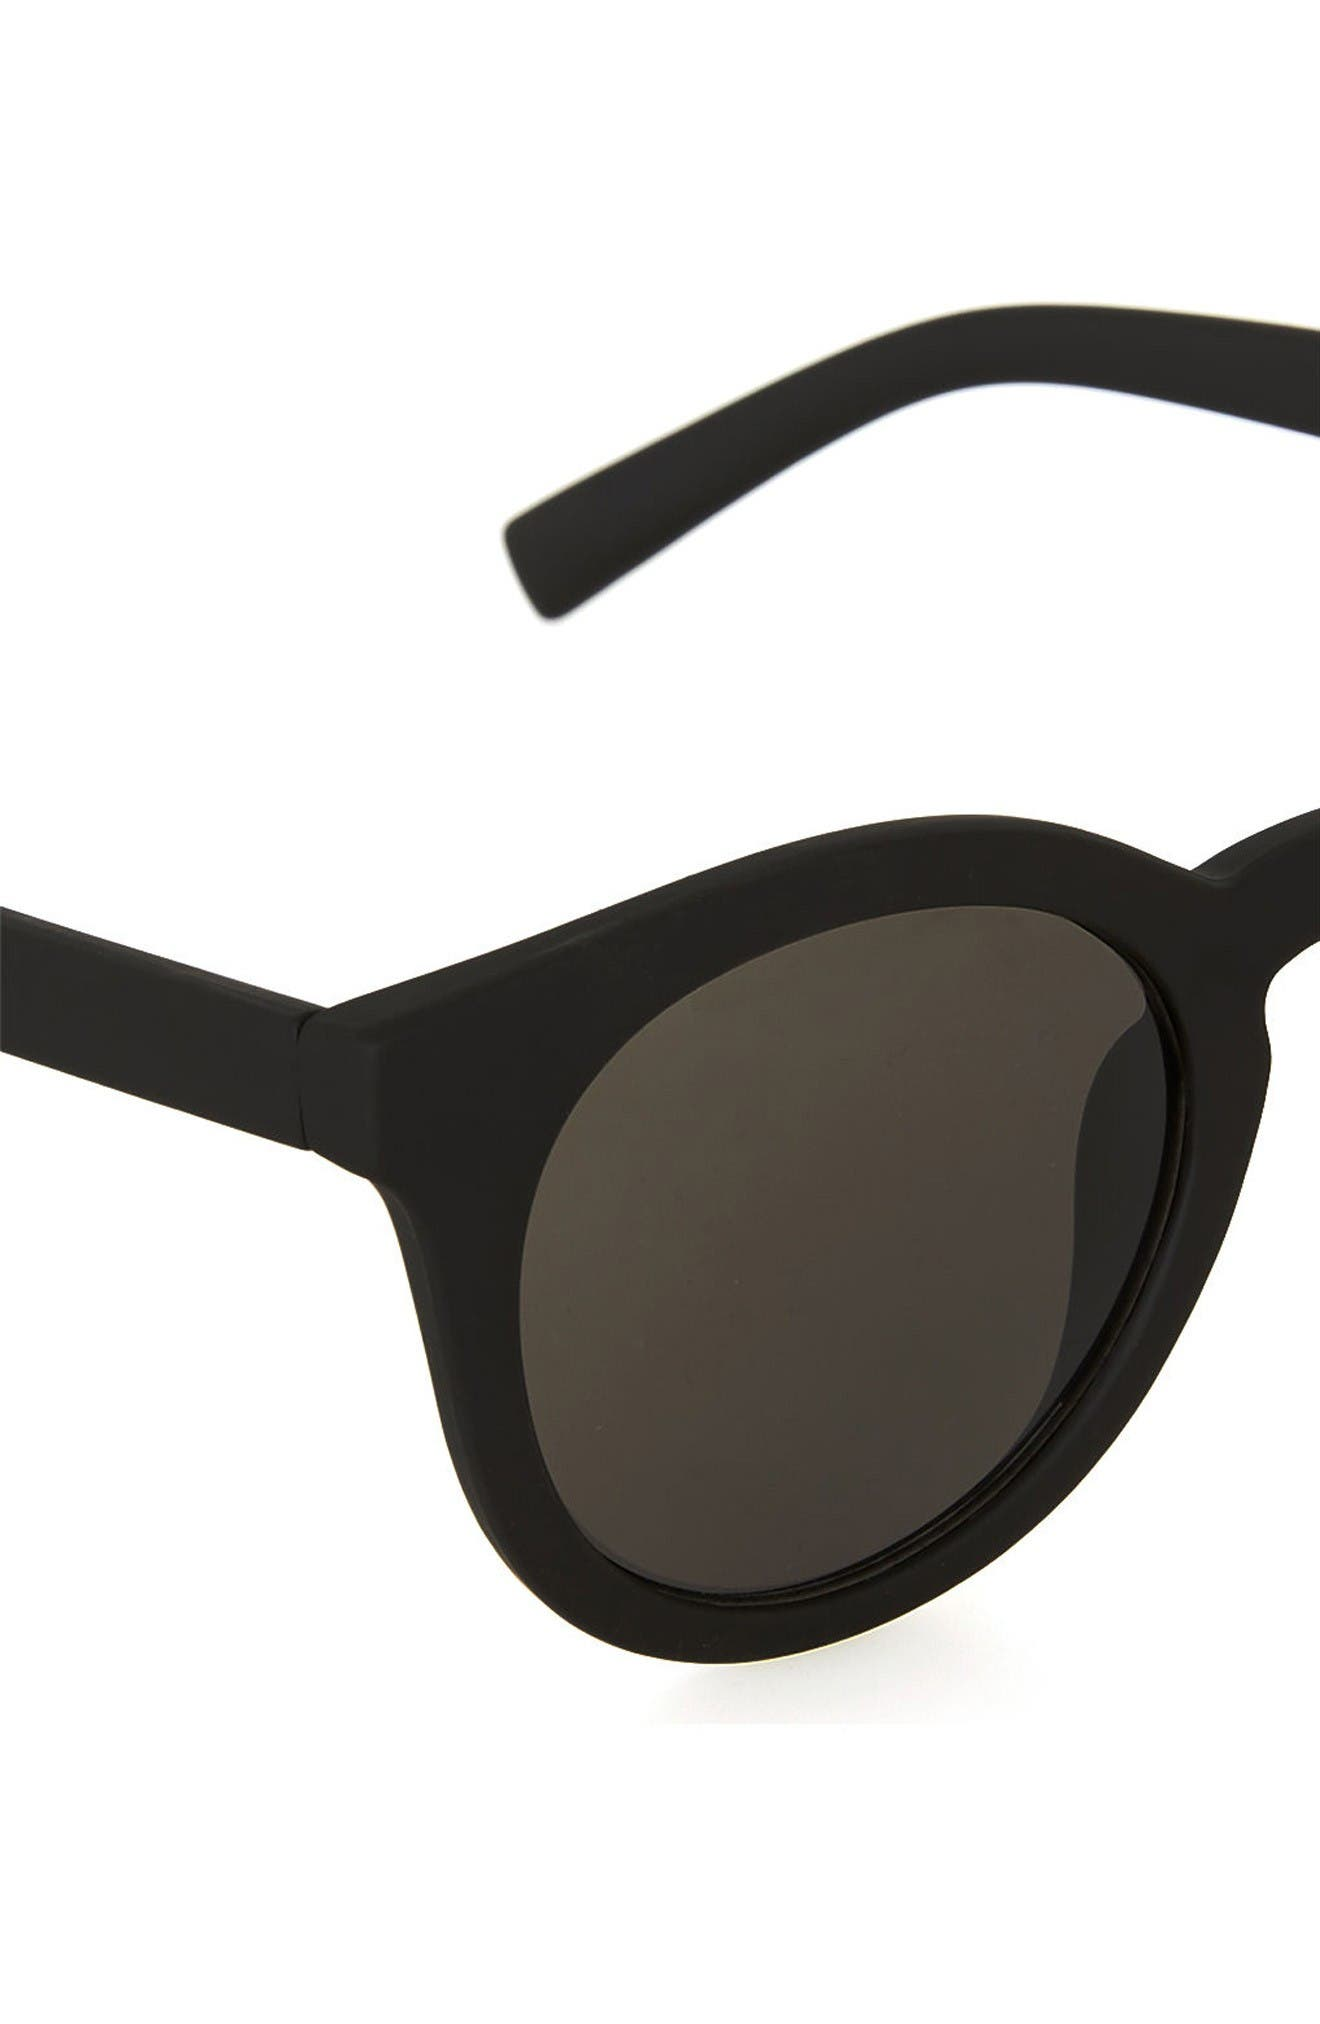 Alternate Image 3  - Topman 46mm Rubberized Round Sunglasses